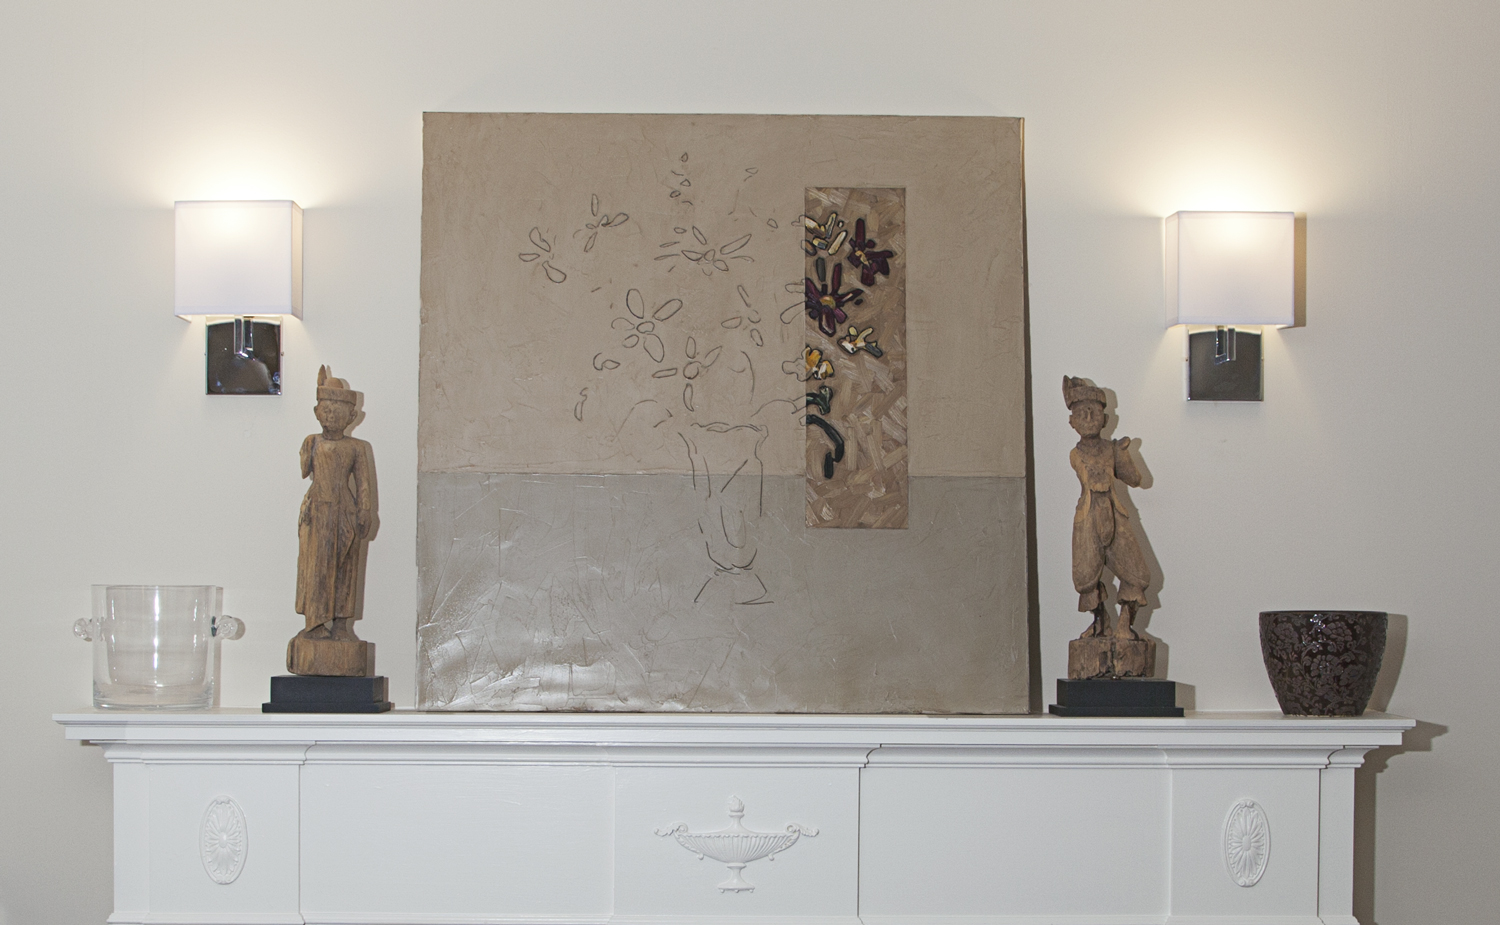 The first piece of art they bought together, by David Grieve.